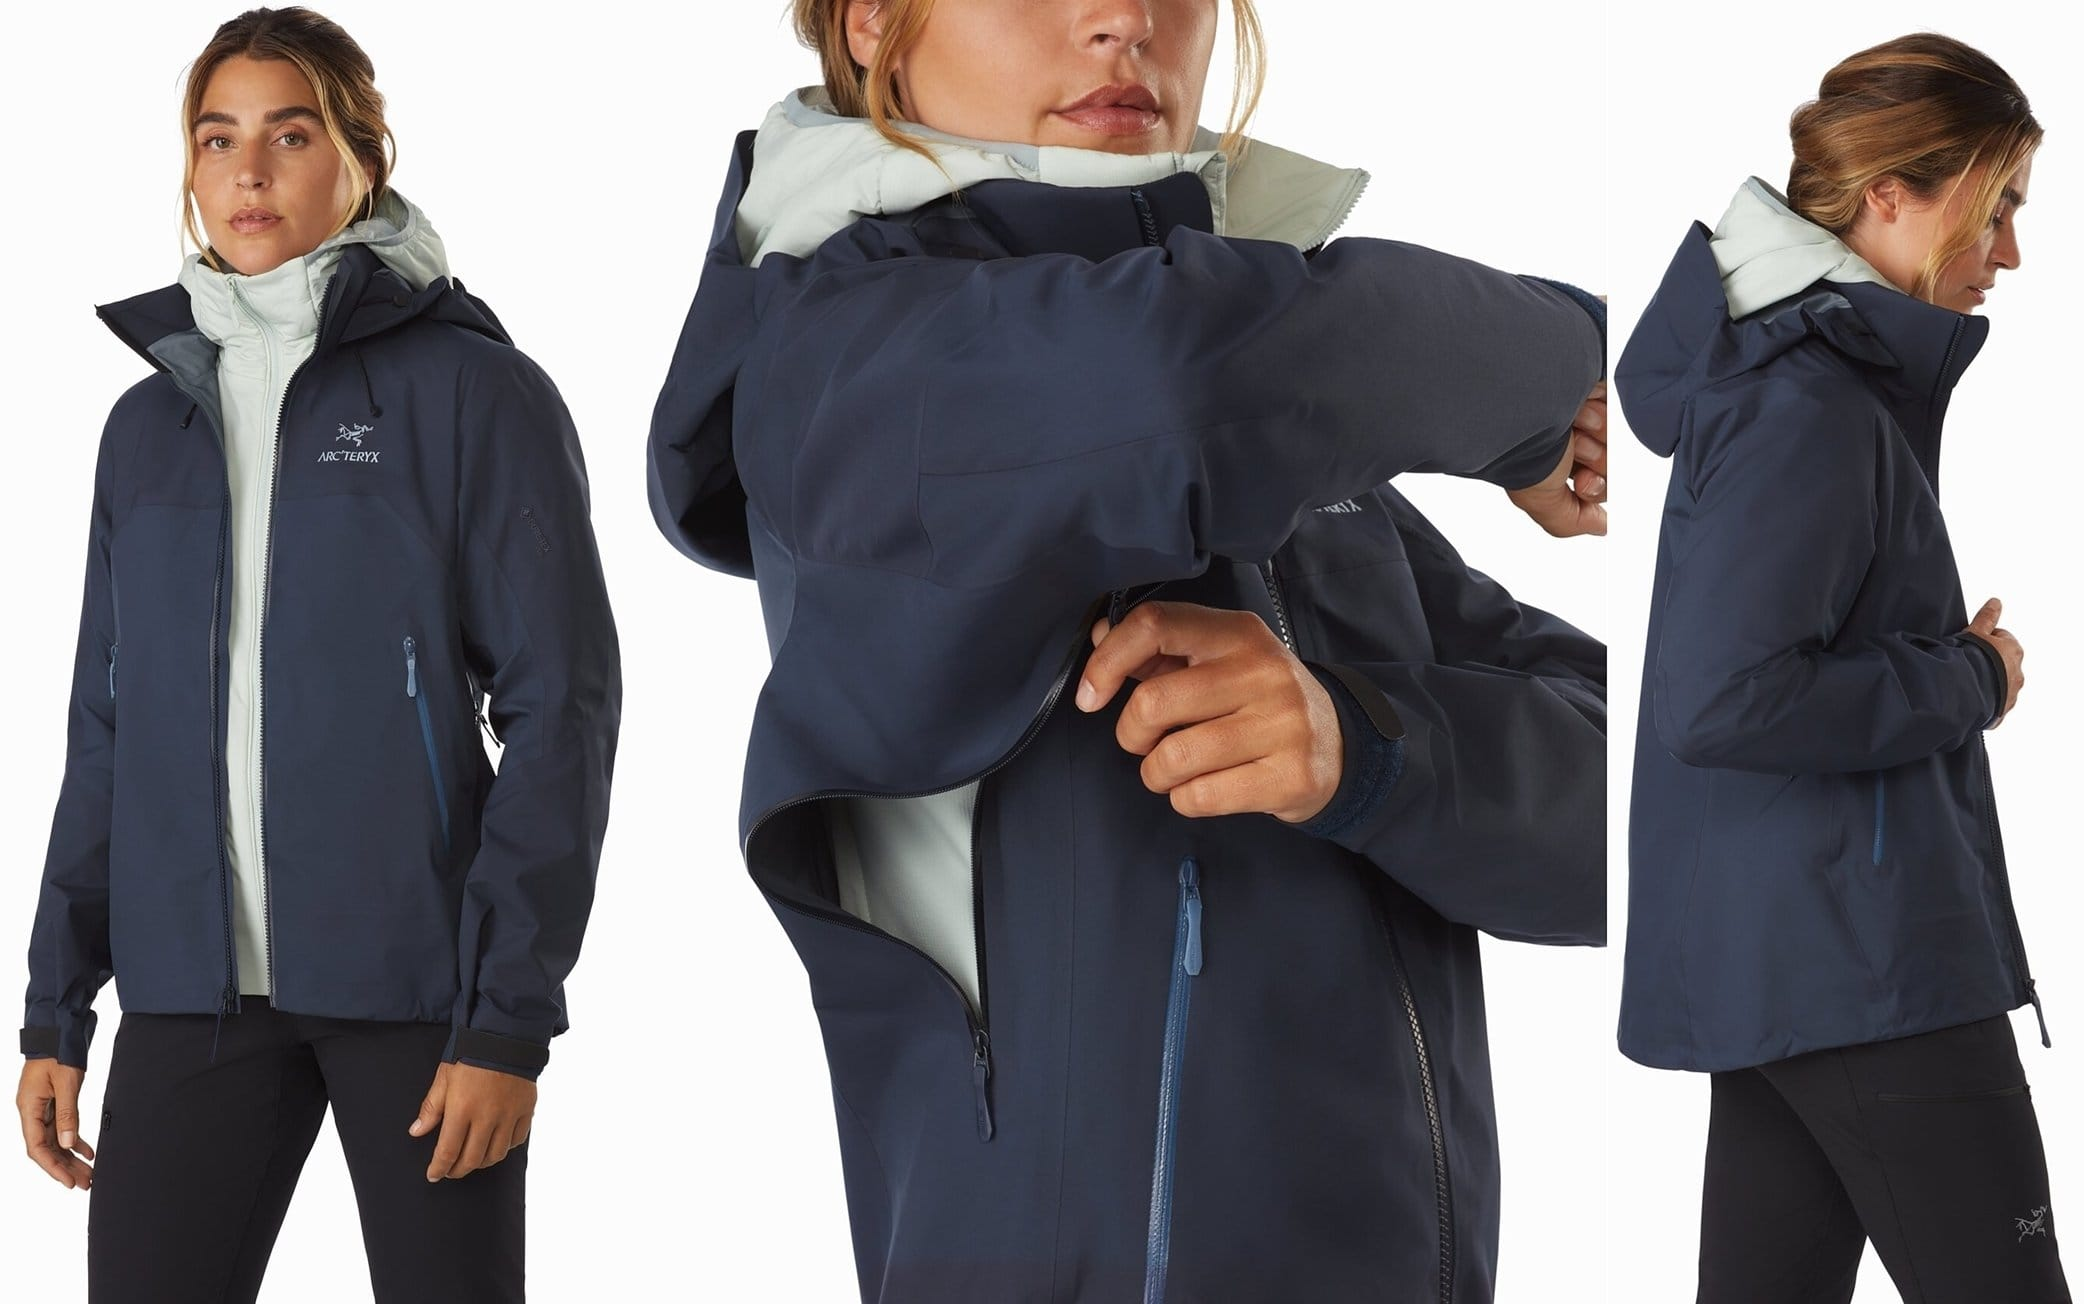 Light, packable, highly versatile GORE-TEX PRO shell with hybrid construction